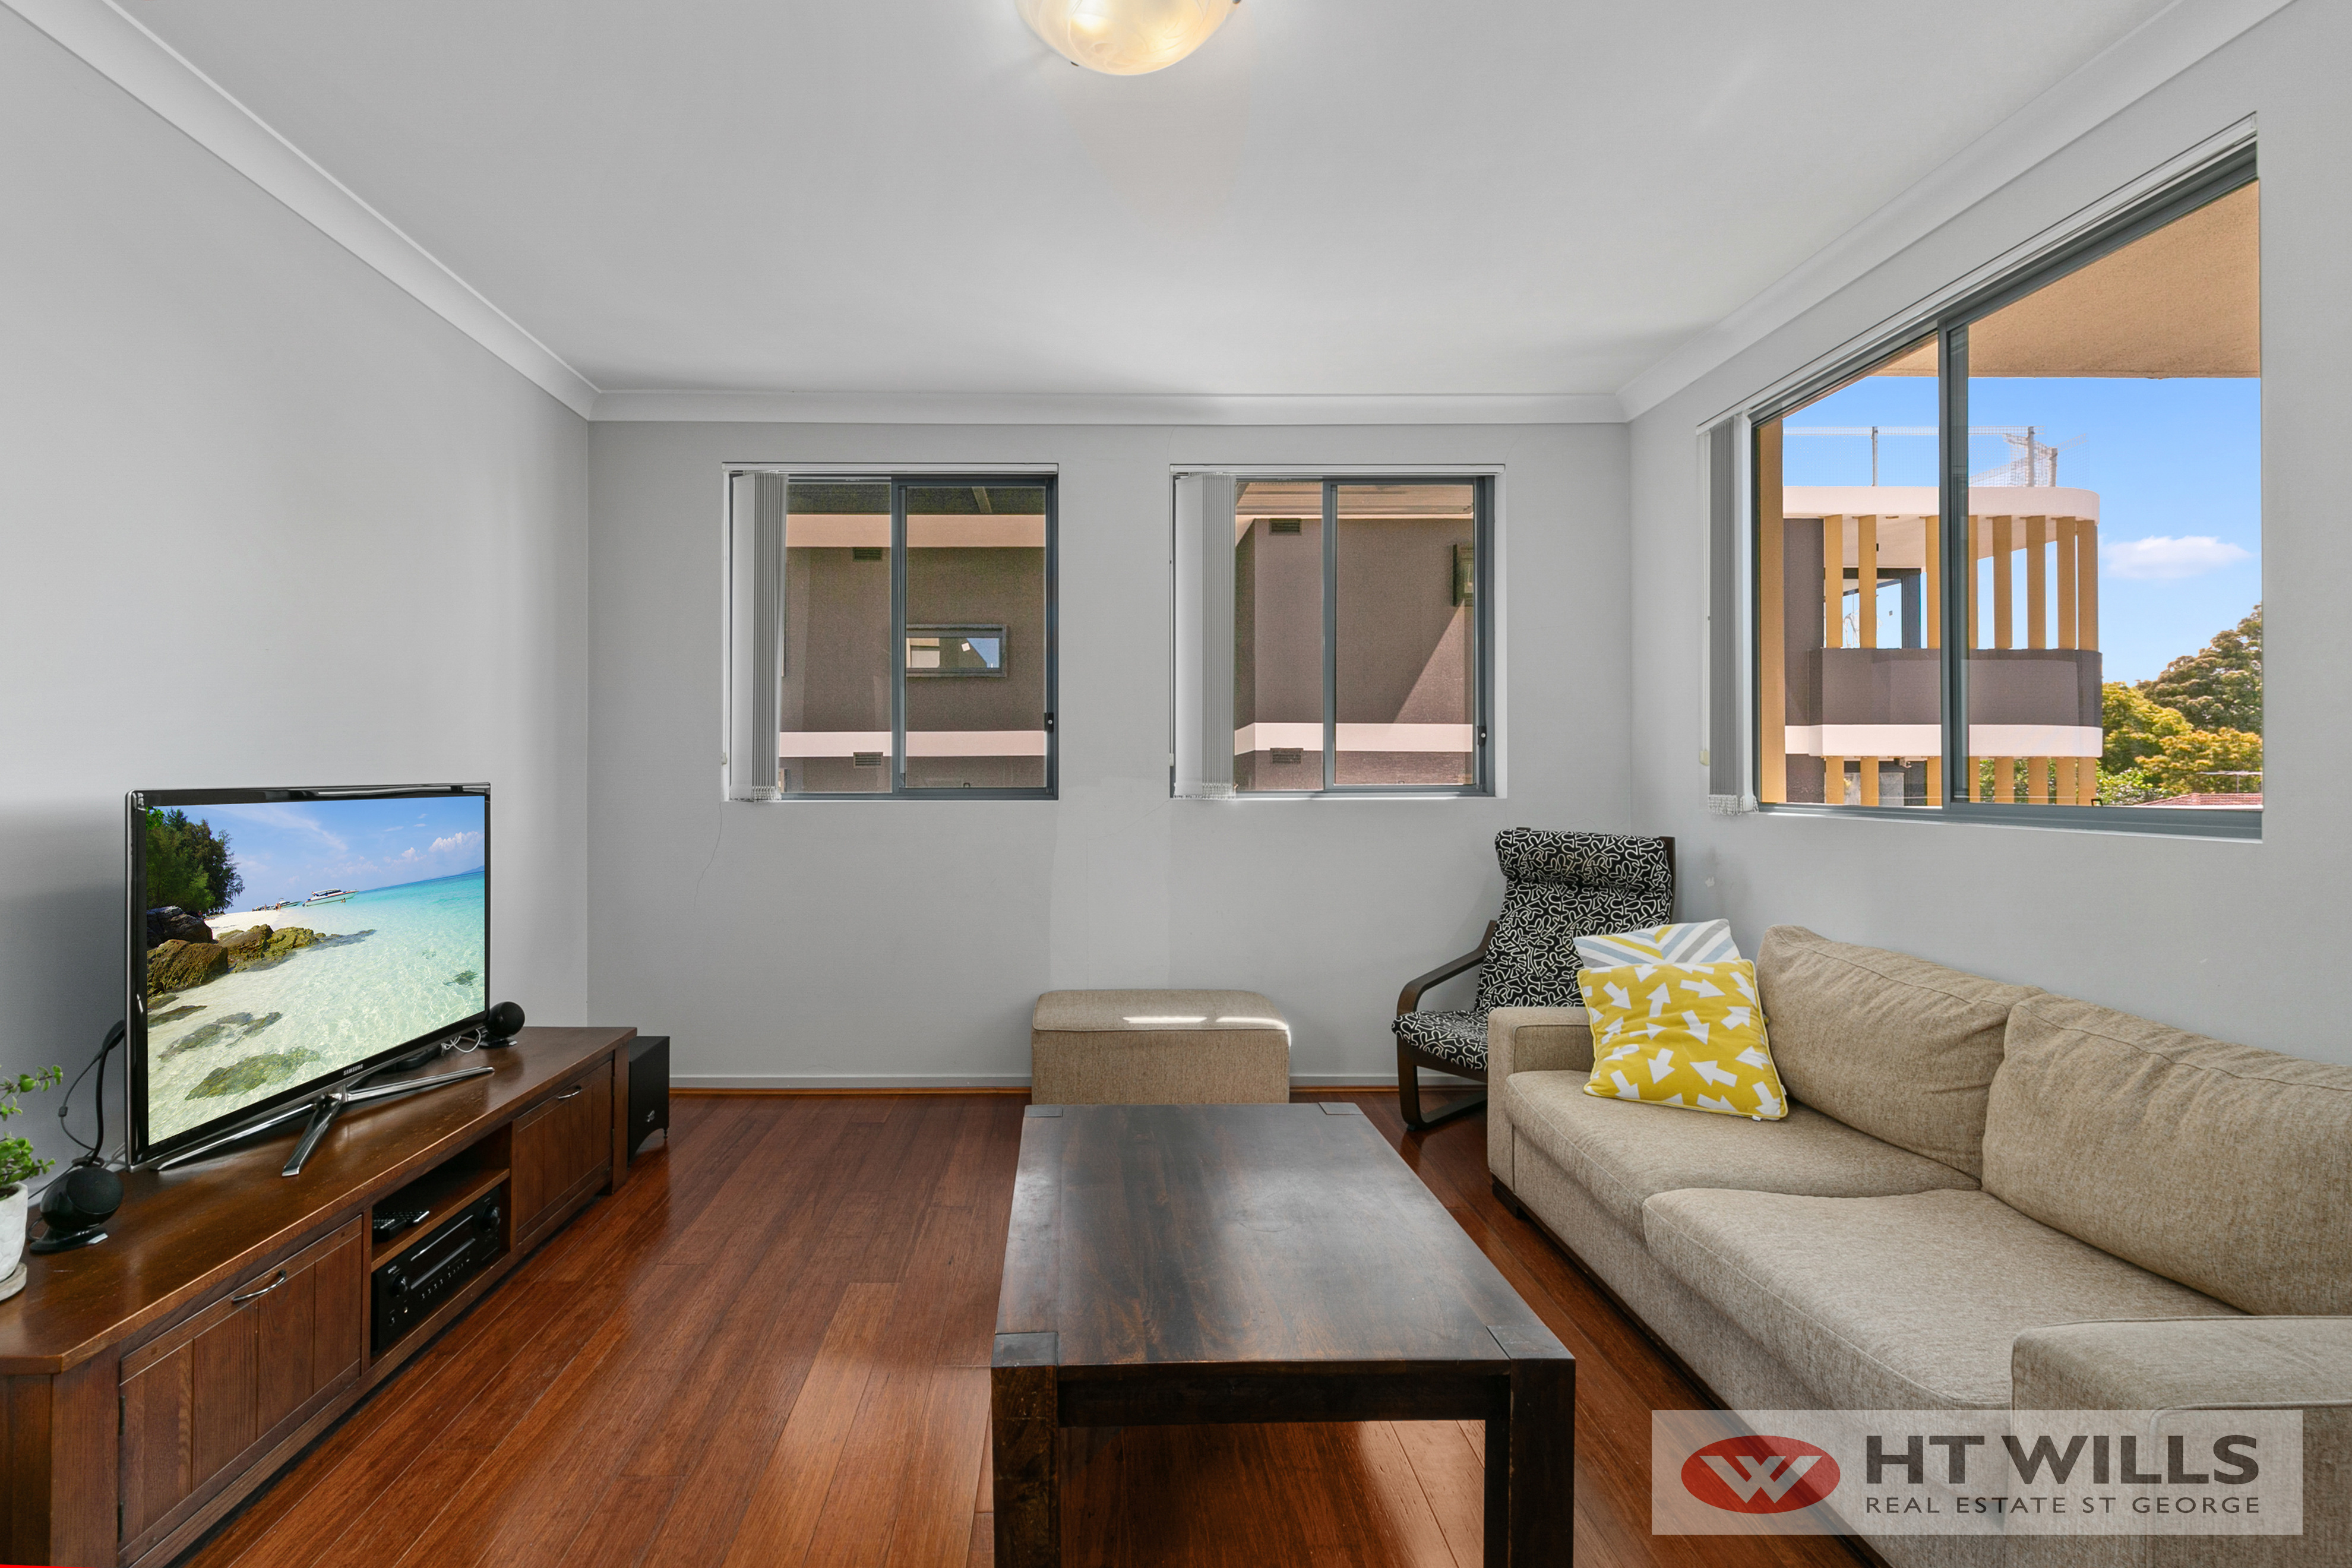 Image: Huge 123sqm 2bd 2bath with laminated flooring throughout the whole apartment